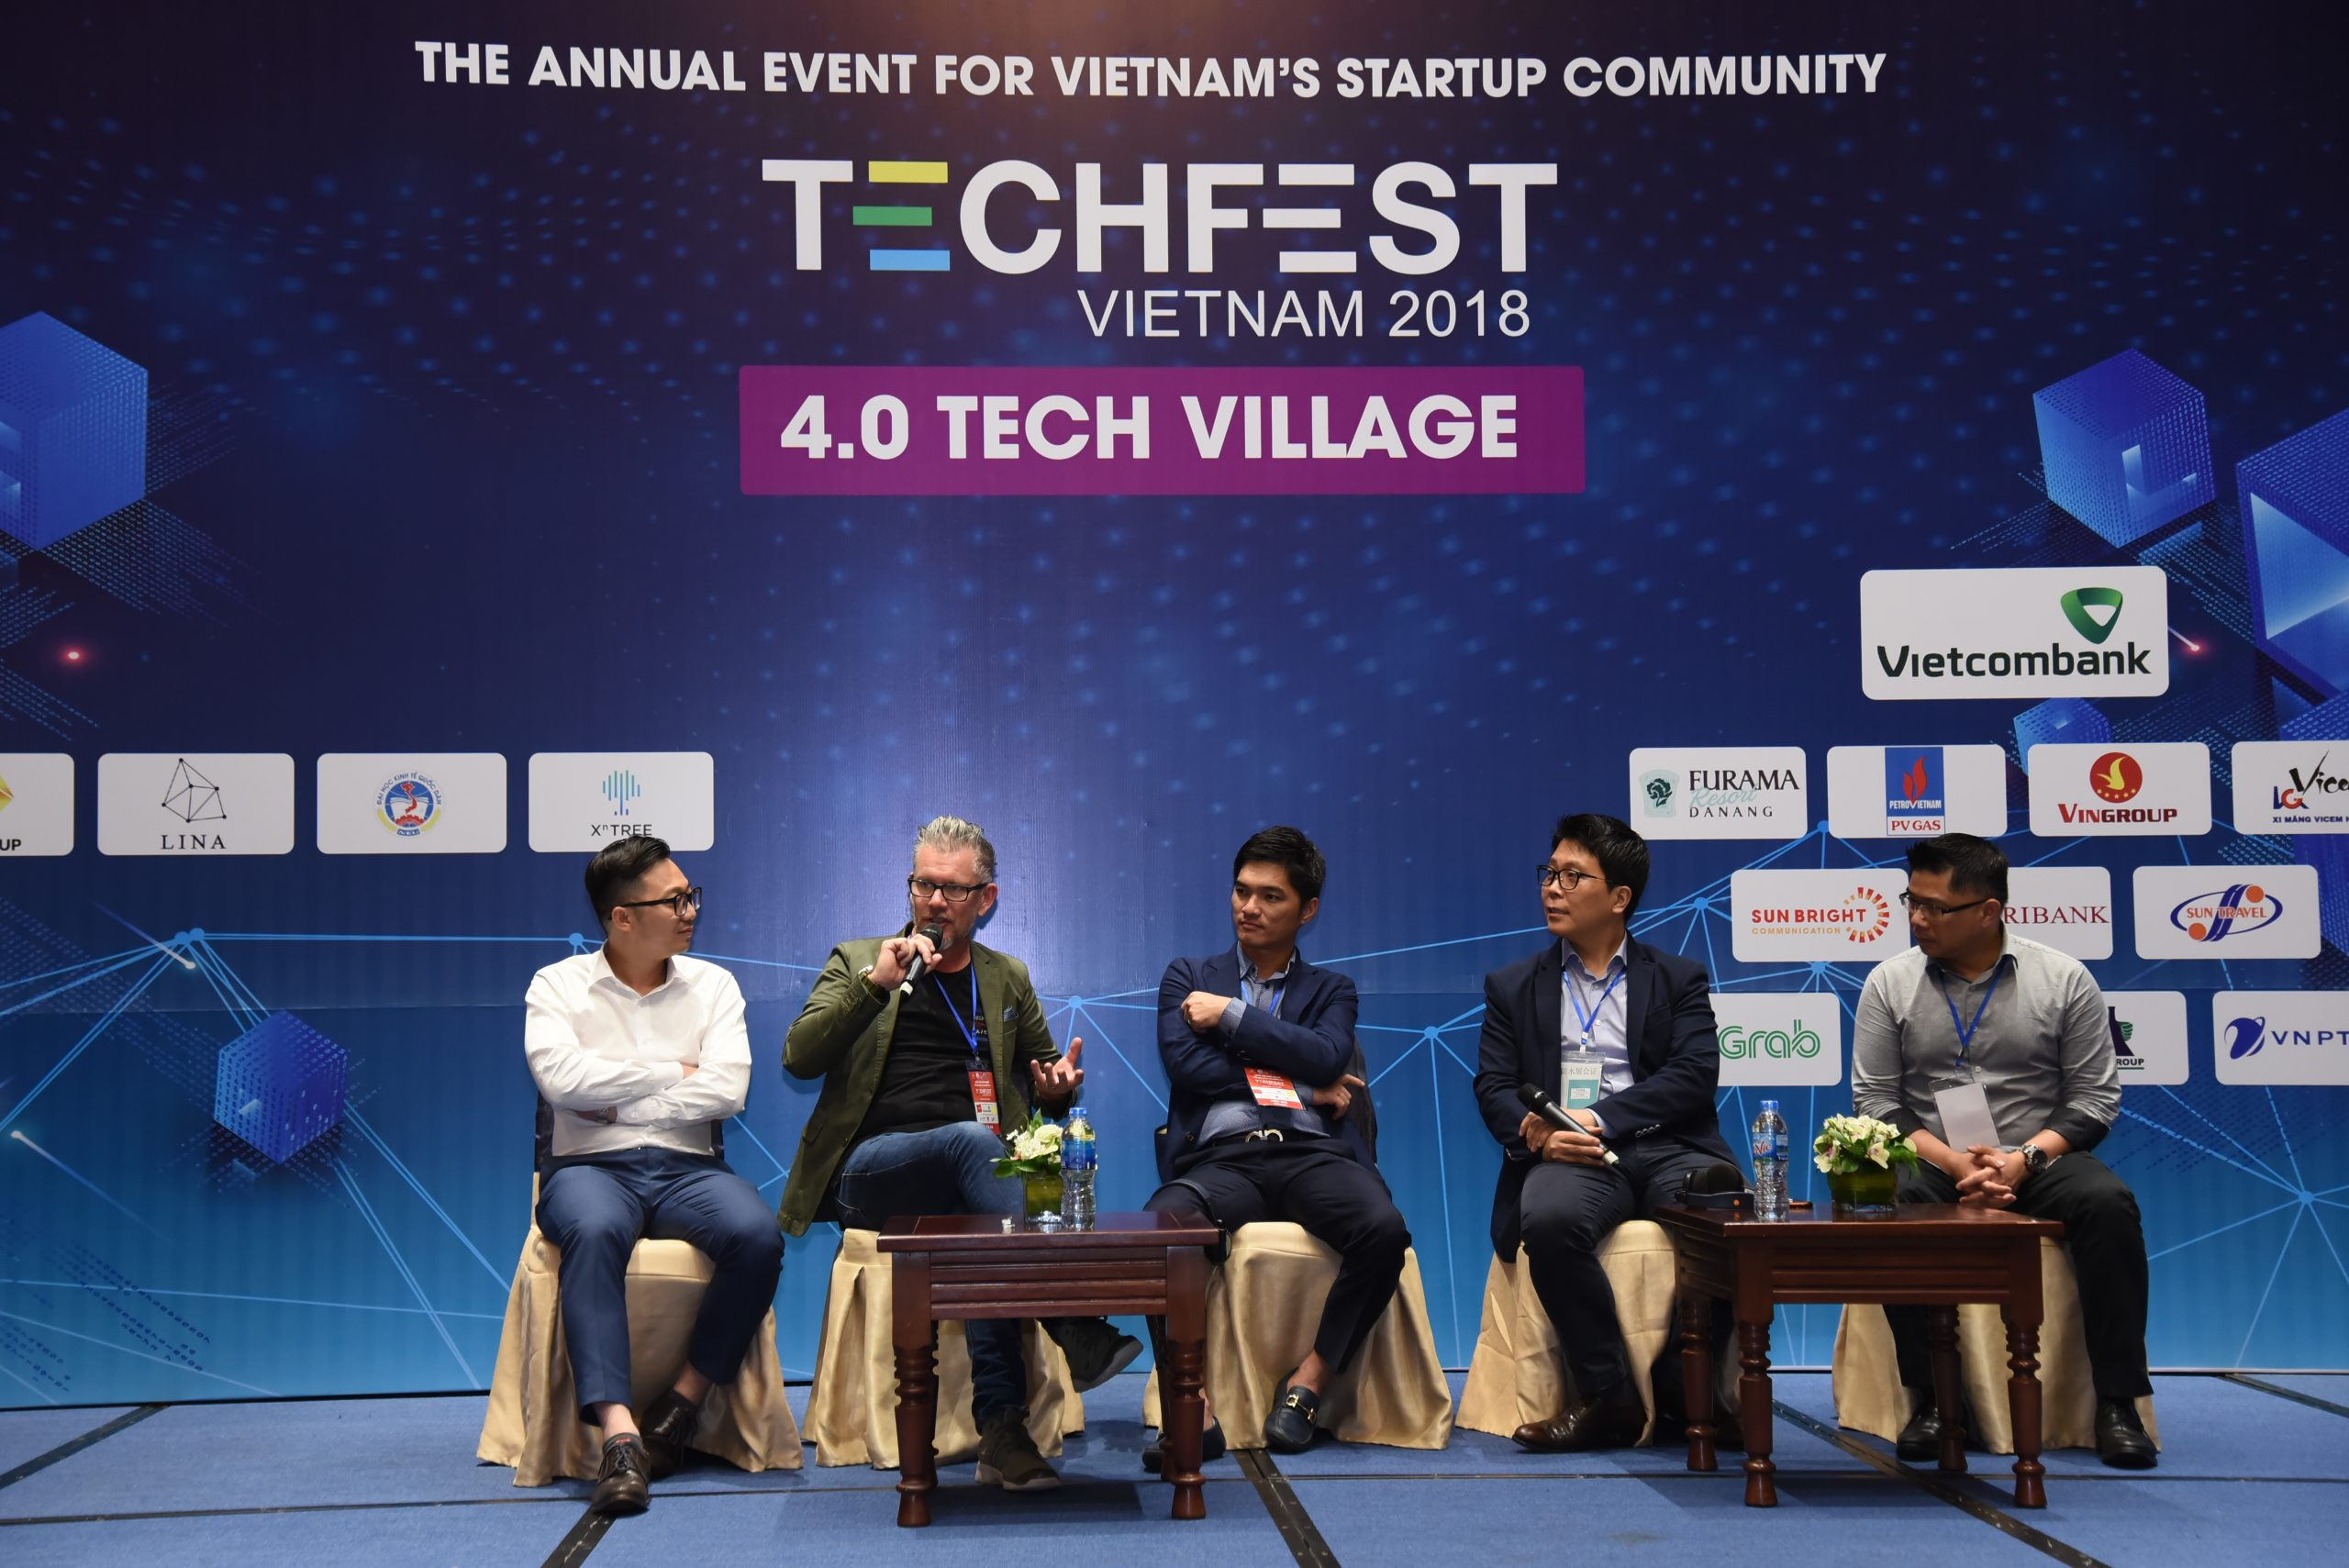 Lina Network at TECHFEST 2018 in Danang